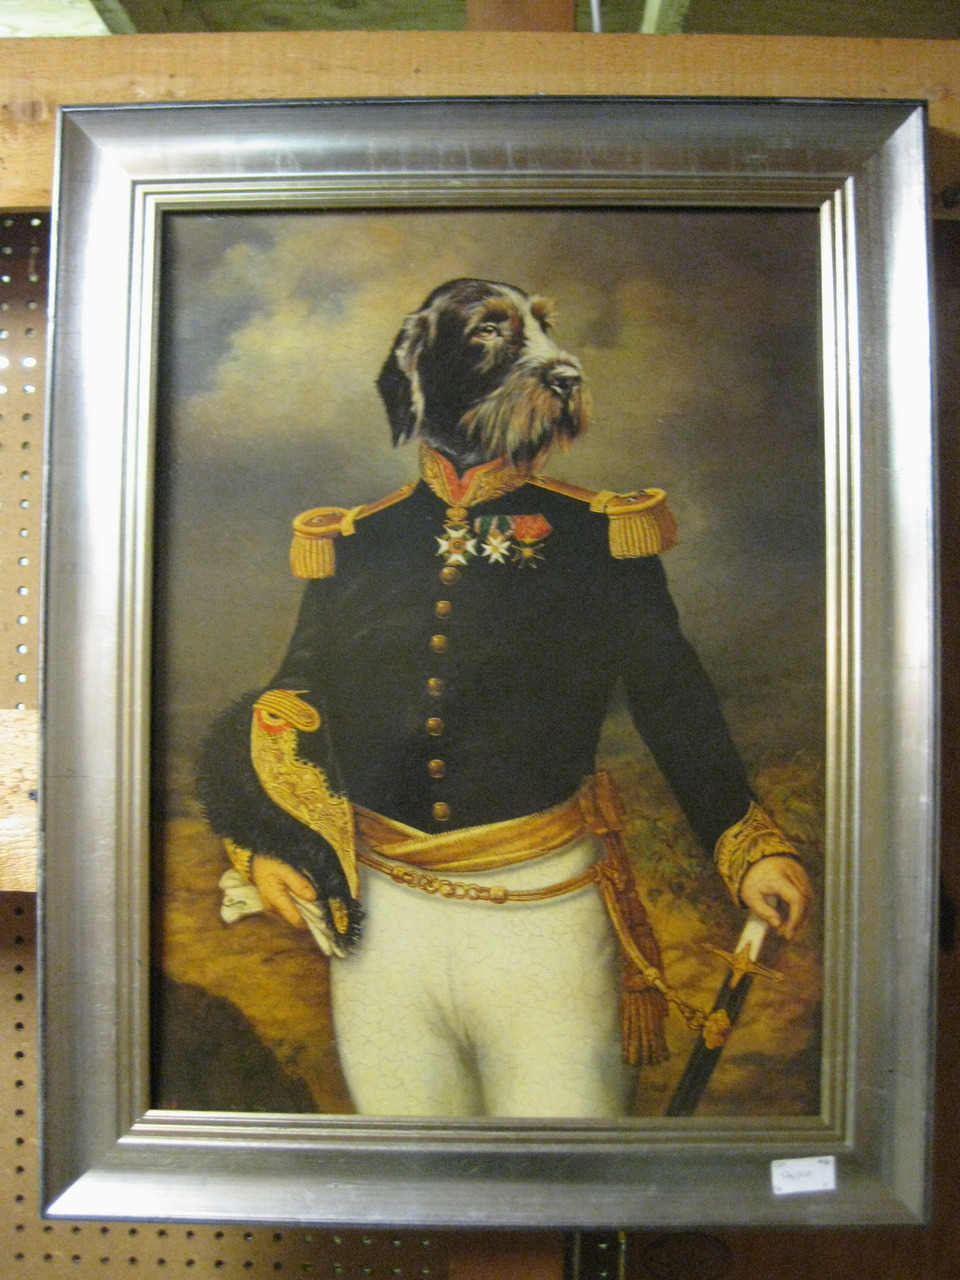 This dog painting costs $250.00. Can you believe that? (photo by   Stu Sherman  )